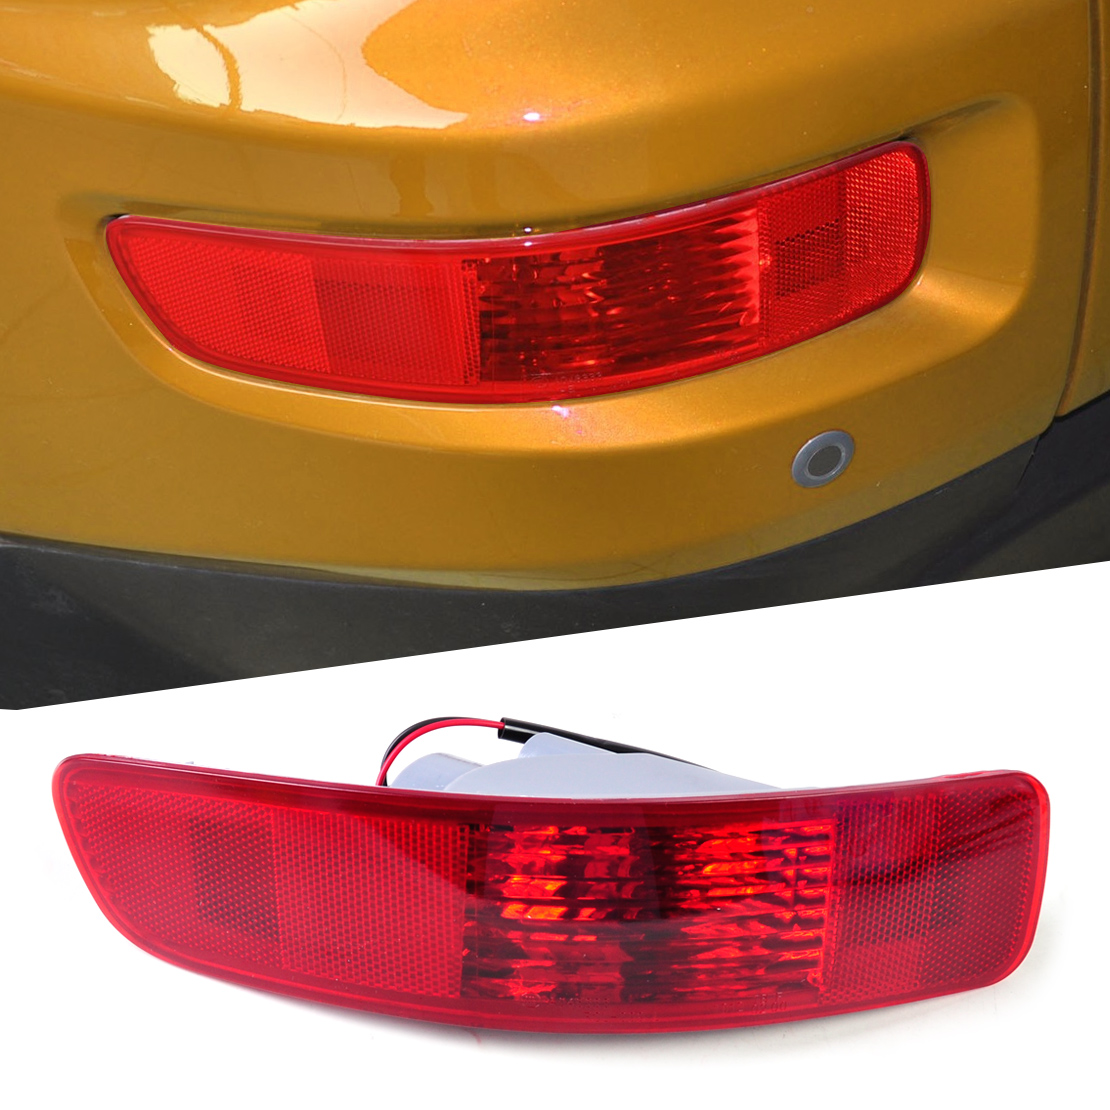 beler Rear Fog Lamp Light Left Side SL693-LH Fit for Mitsubishi Outlander 2007 2008 2009 2010 2011 2012 2013 SL693 rear fog lamp spare tire cover tail bumper light fit for mitsubishi pajero shogun v87 v93 v97 2007 2008 2009 2010 2011 2012 2015